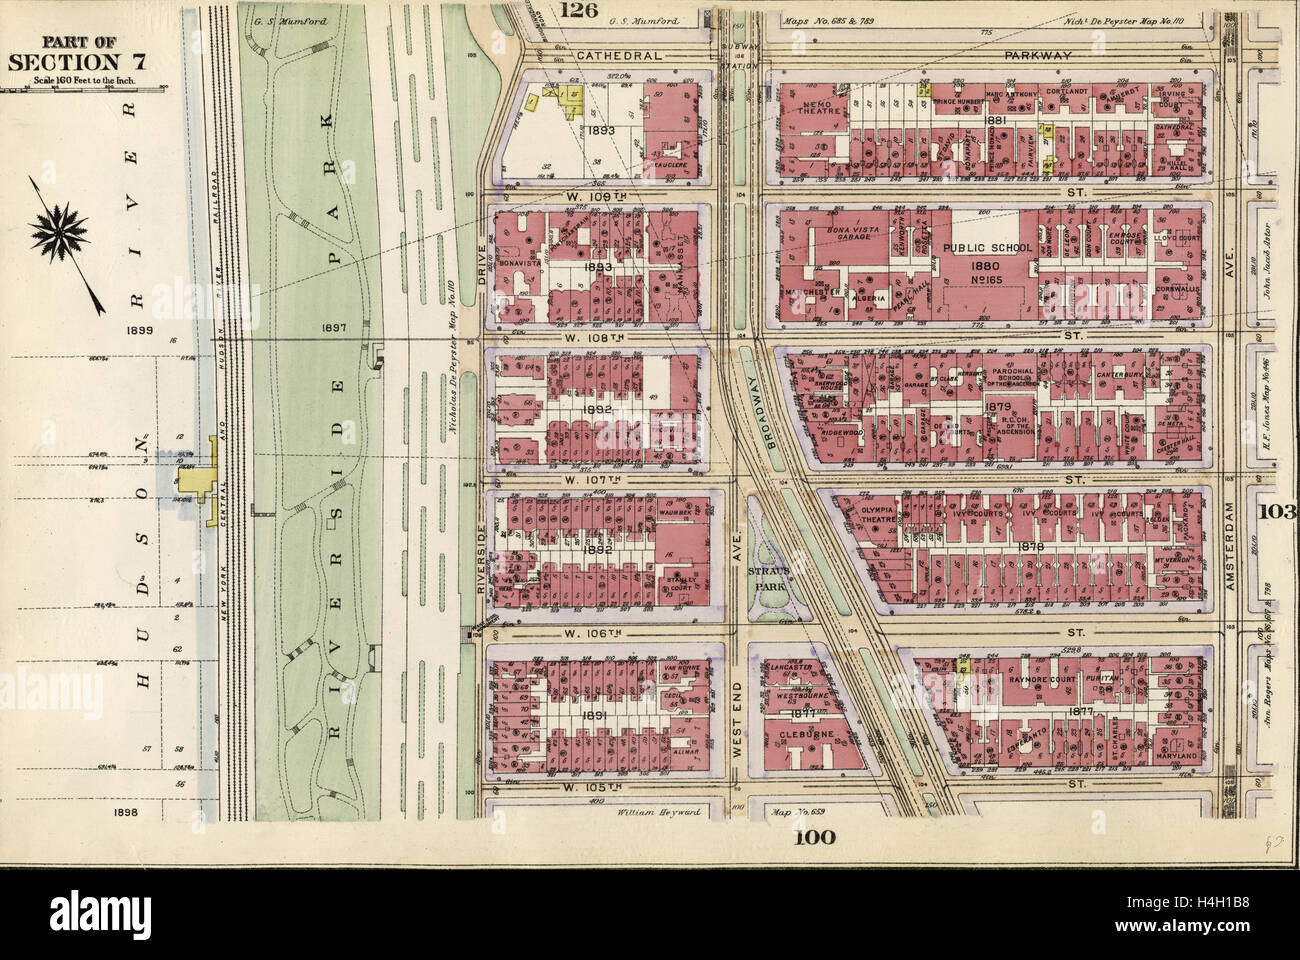 plate 102 bounded by cathedral parkway amsterdam avenue w 105th street and riverside park riverside drive new york usa